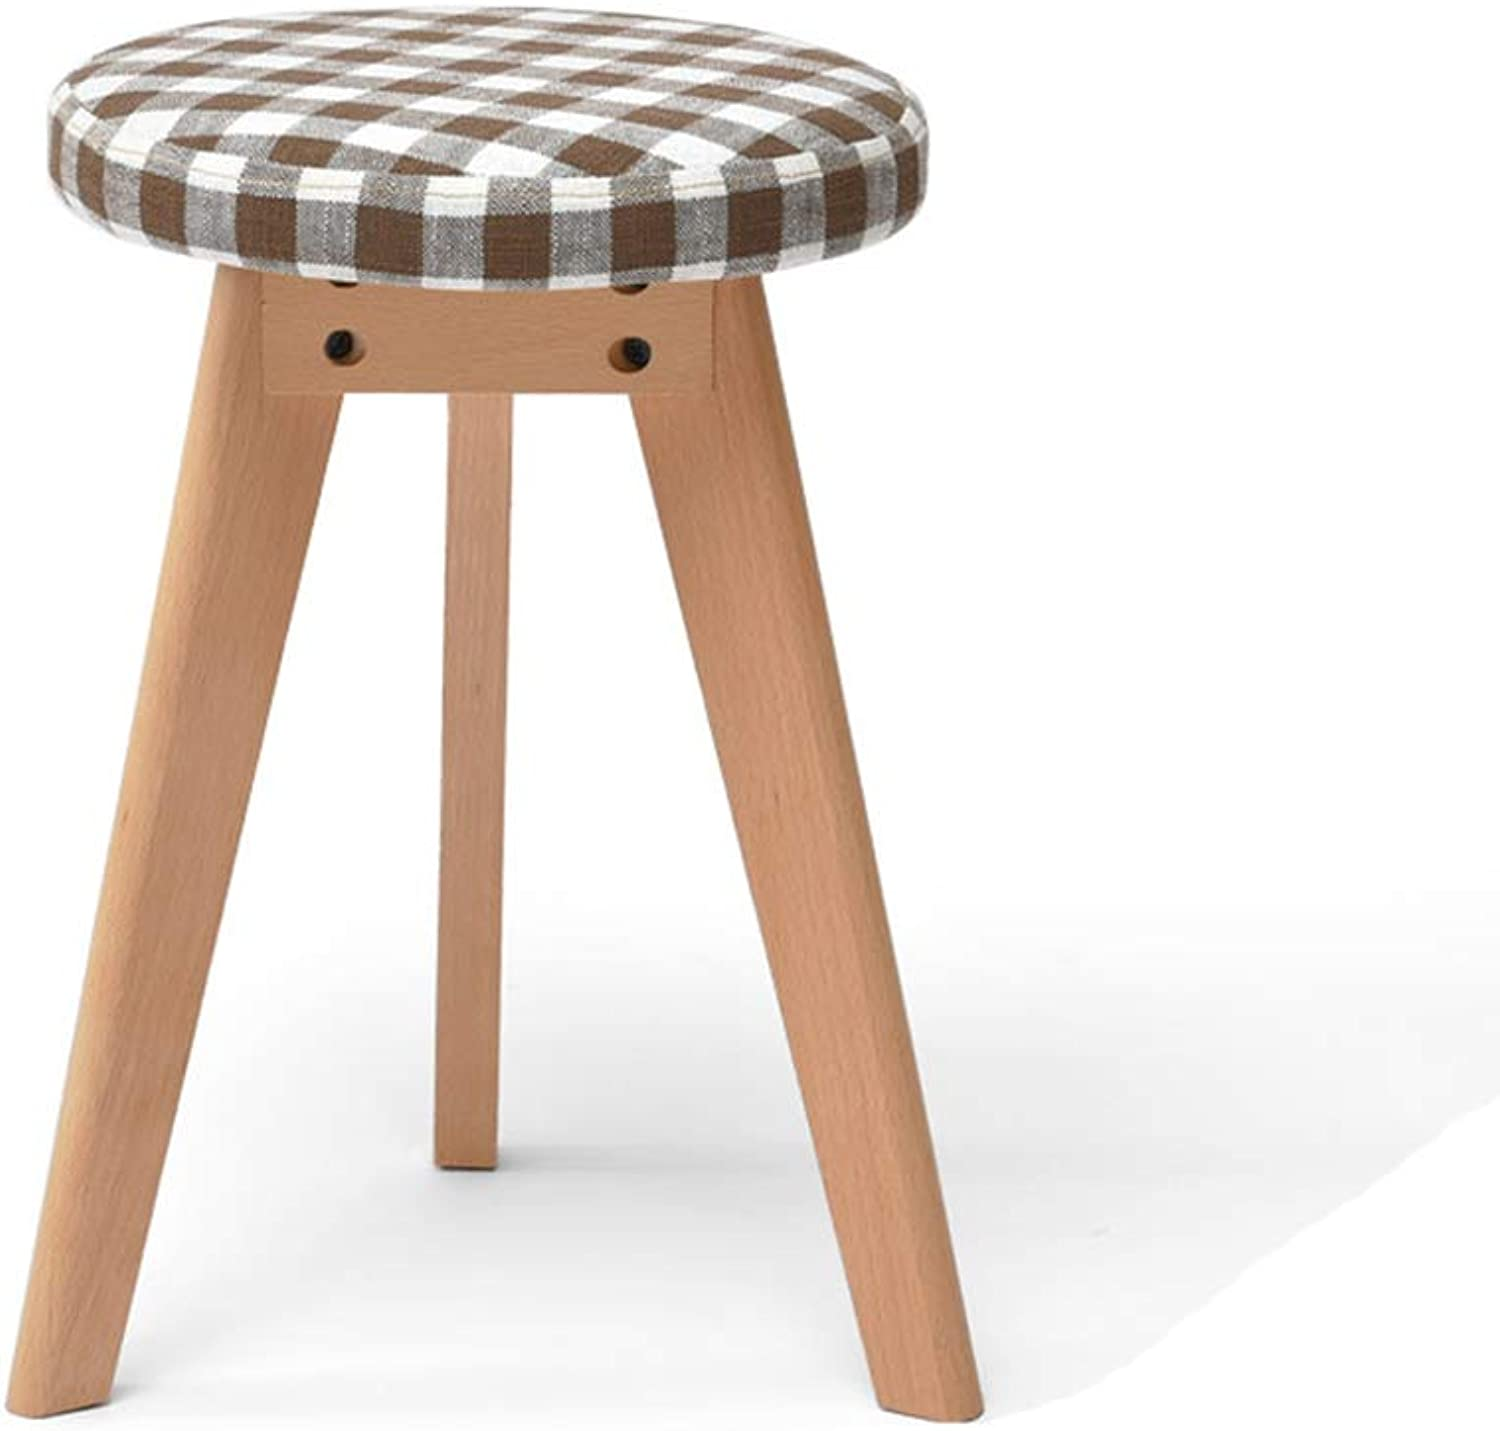 XSJJ Stool, Home Solid Wood Round Fabric Makeup Home Change shoes Pad Table Table Stool 6 colors Optional Wooden Bench (color   Style)